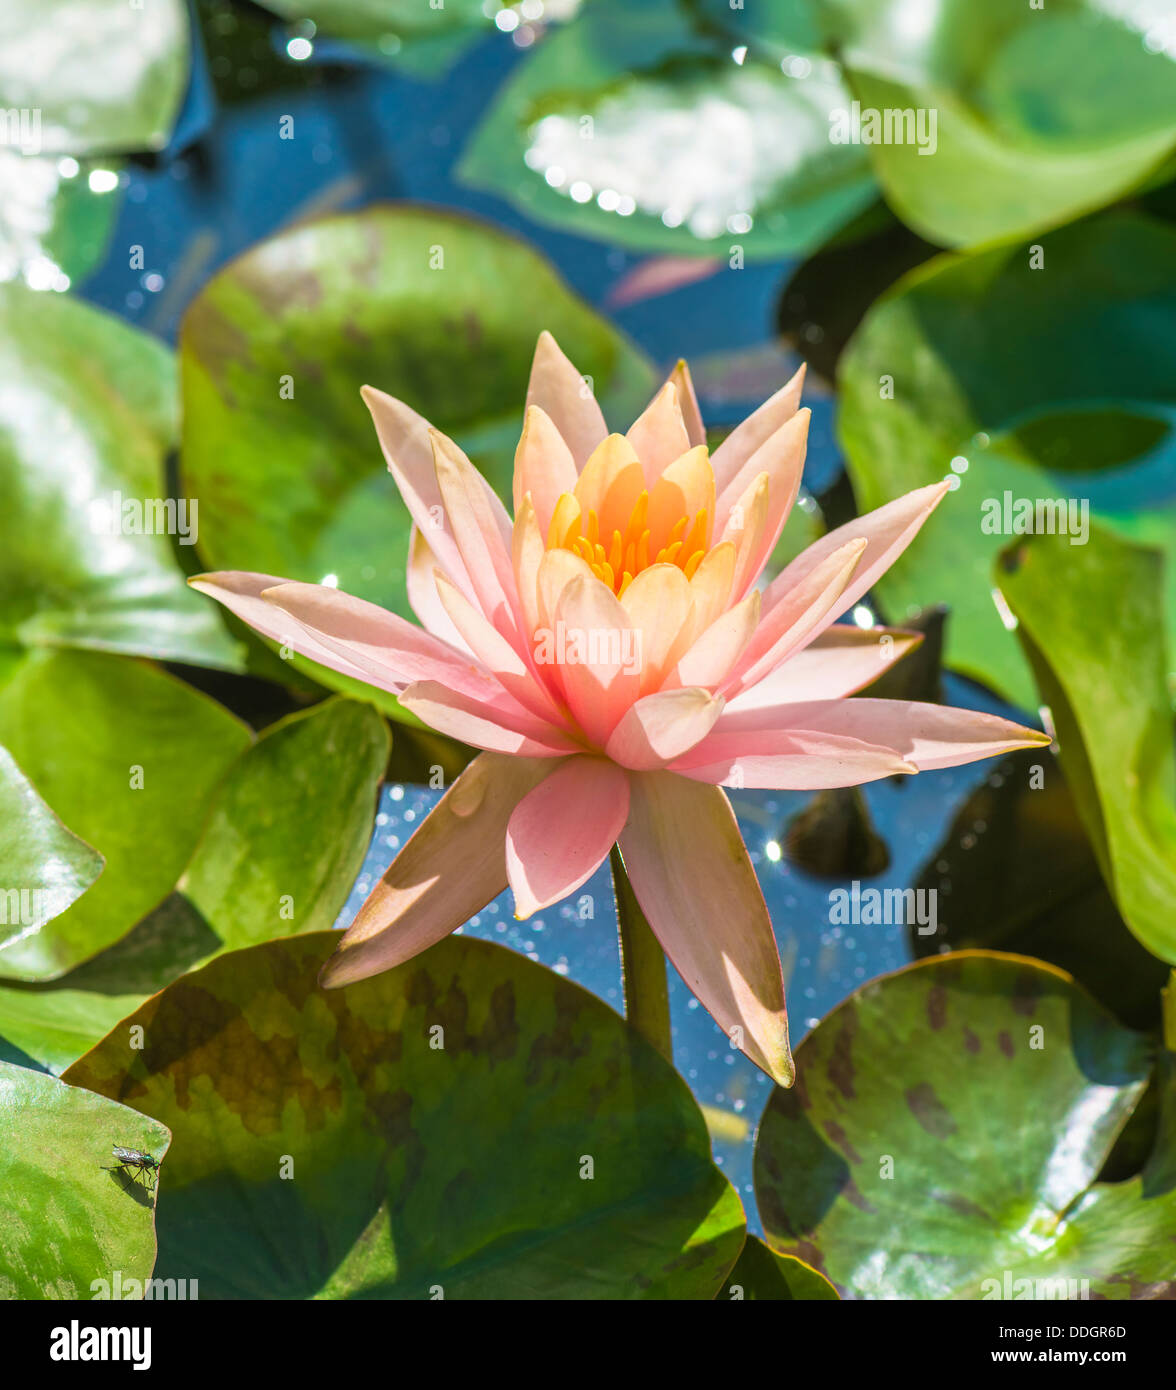 Orange lotus flower in a pond stock photo 59991077 alamy orange lotus flower in a pond izmirmasajfo Images